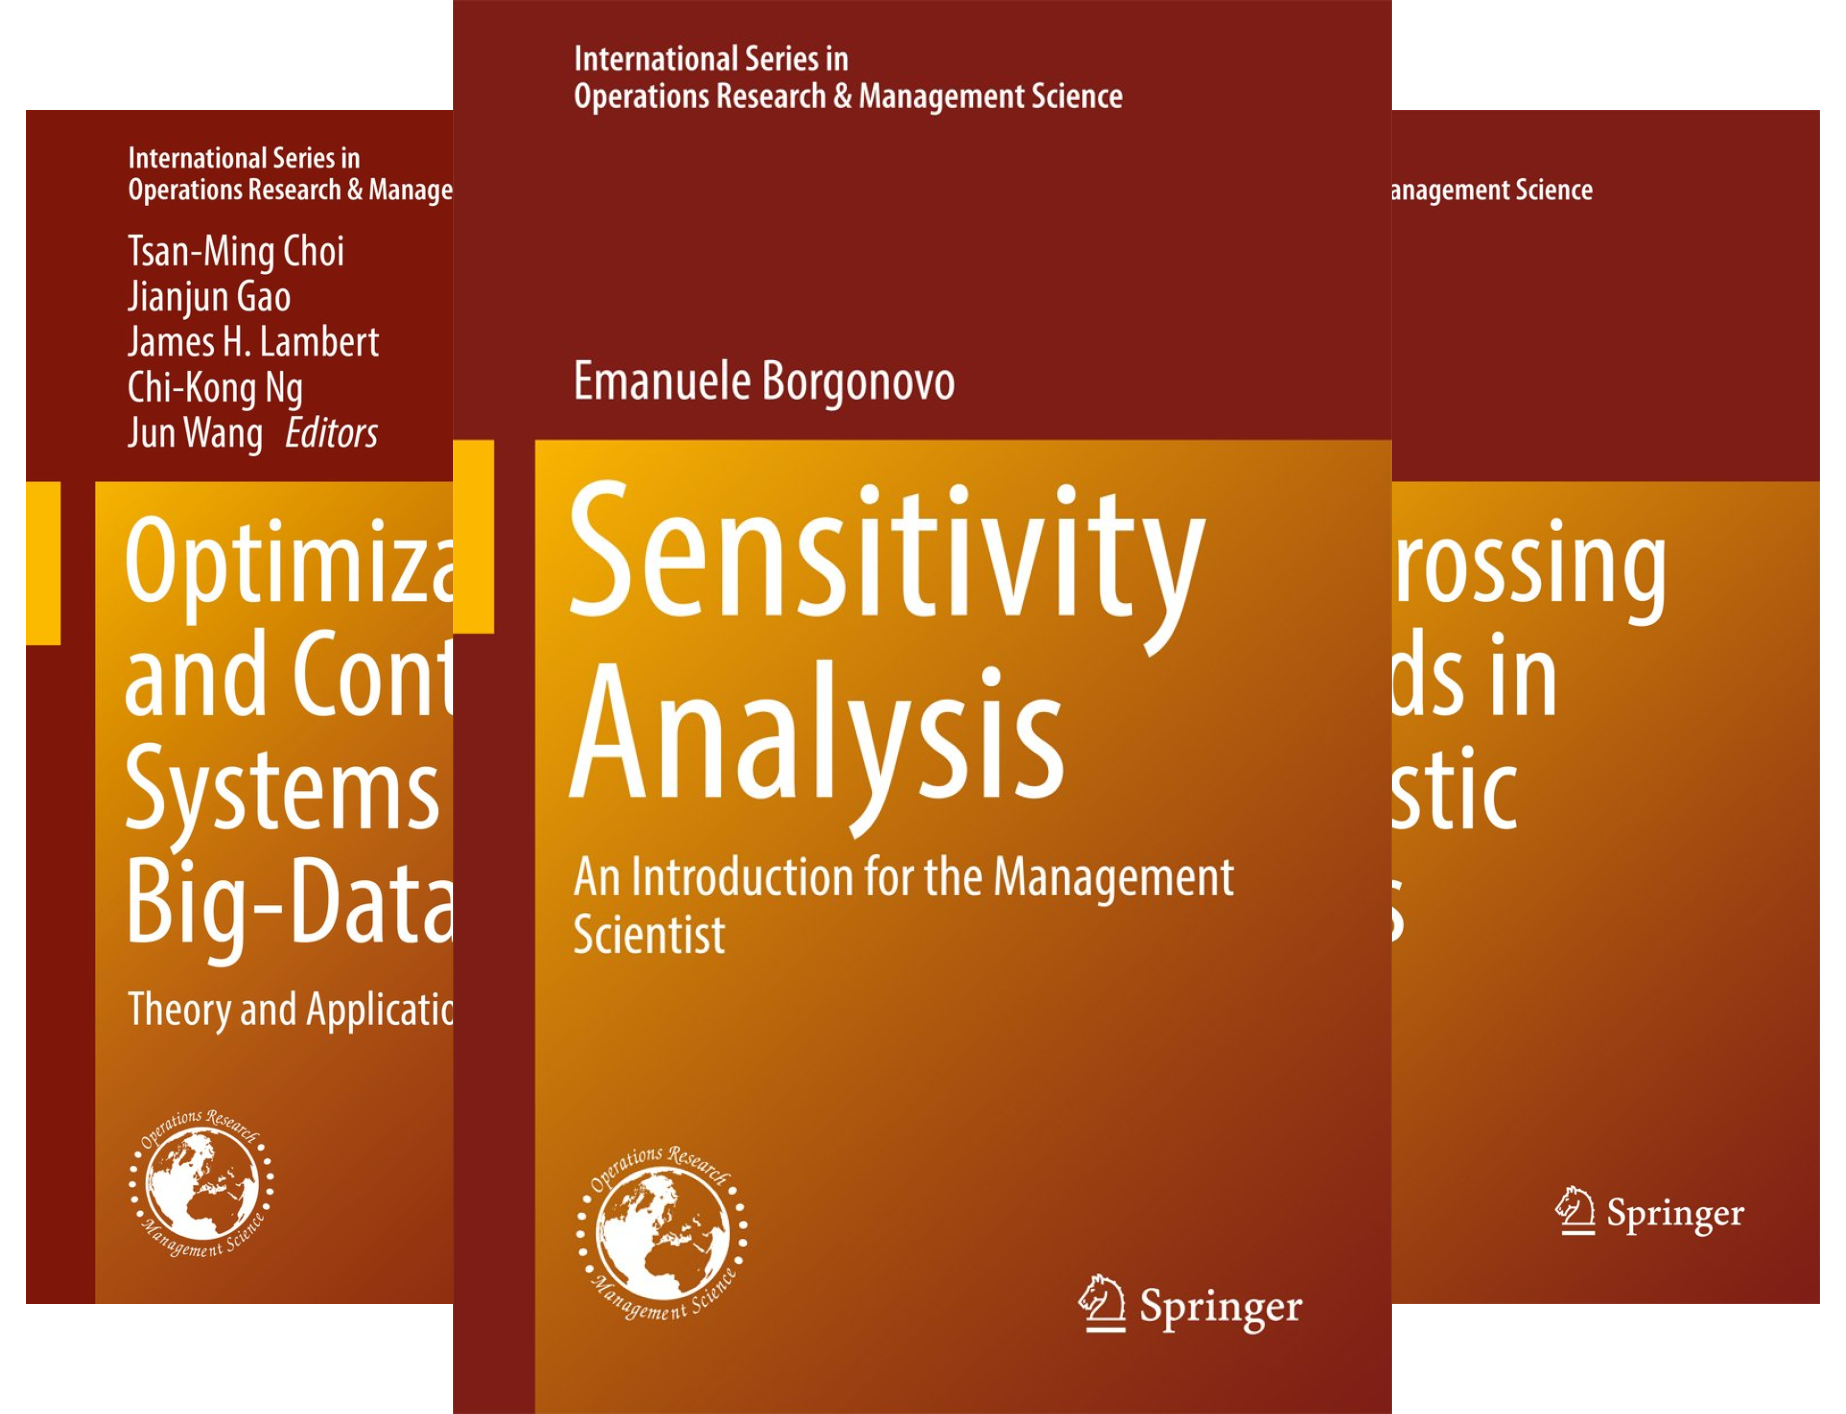 International Series in Operations Research & Management Science (101-150) (50 Book Series)